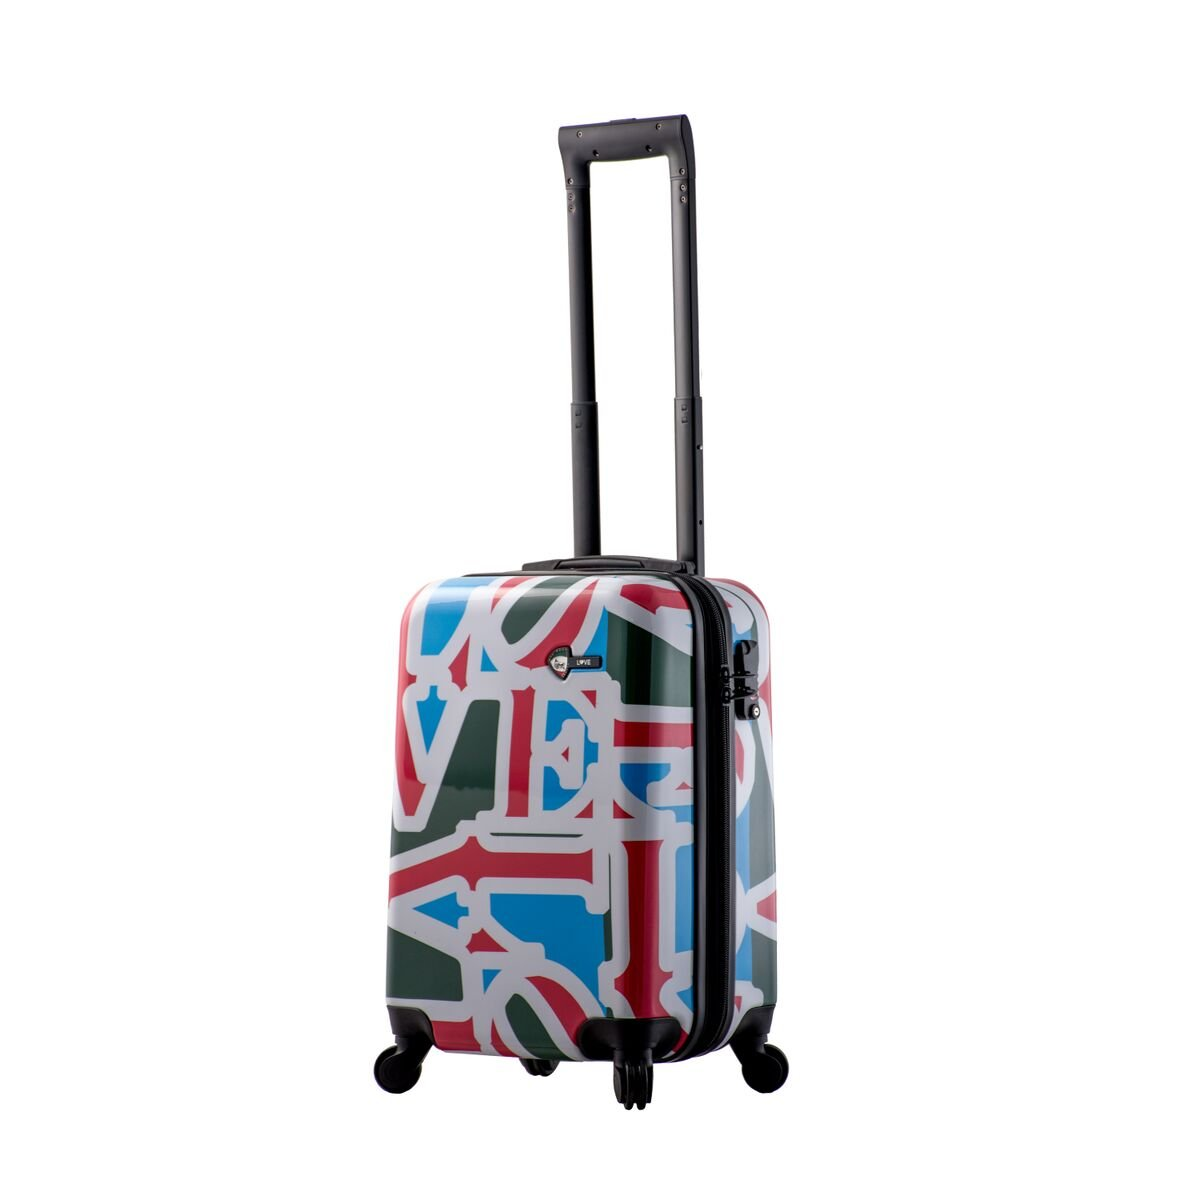 Mia Toro Love Collection Hard Side Spinner Luggage Carry-on, Lcg, Love Collection Green